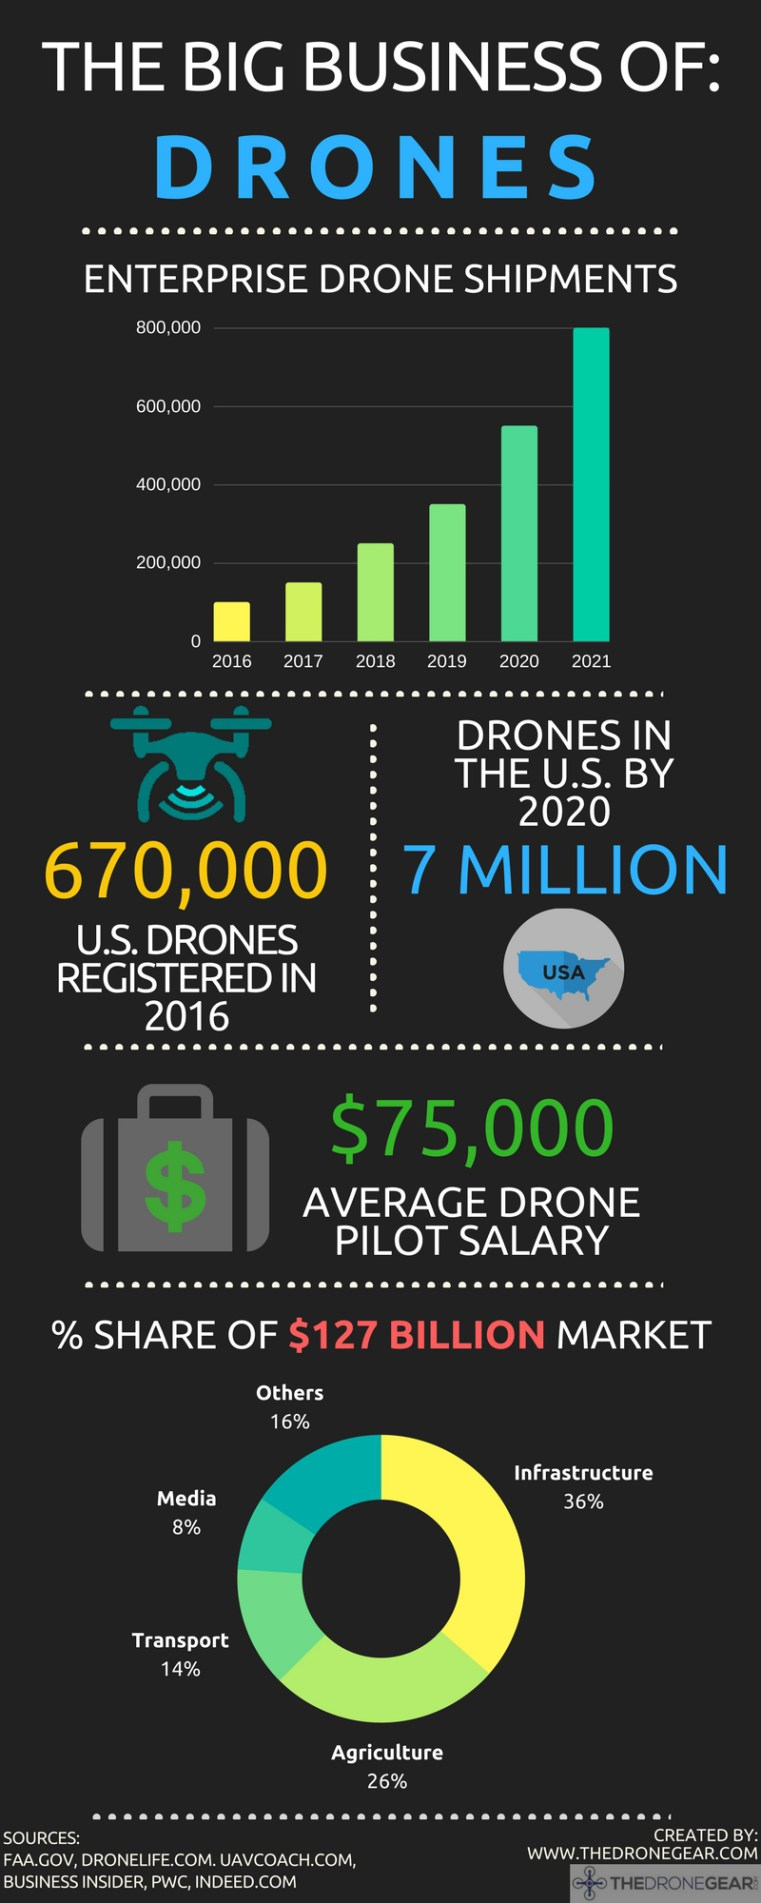 The Big Business of Drones